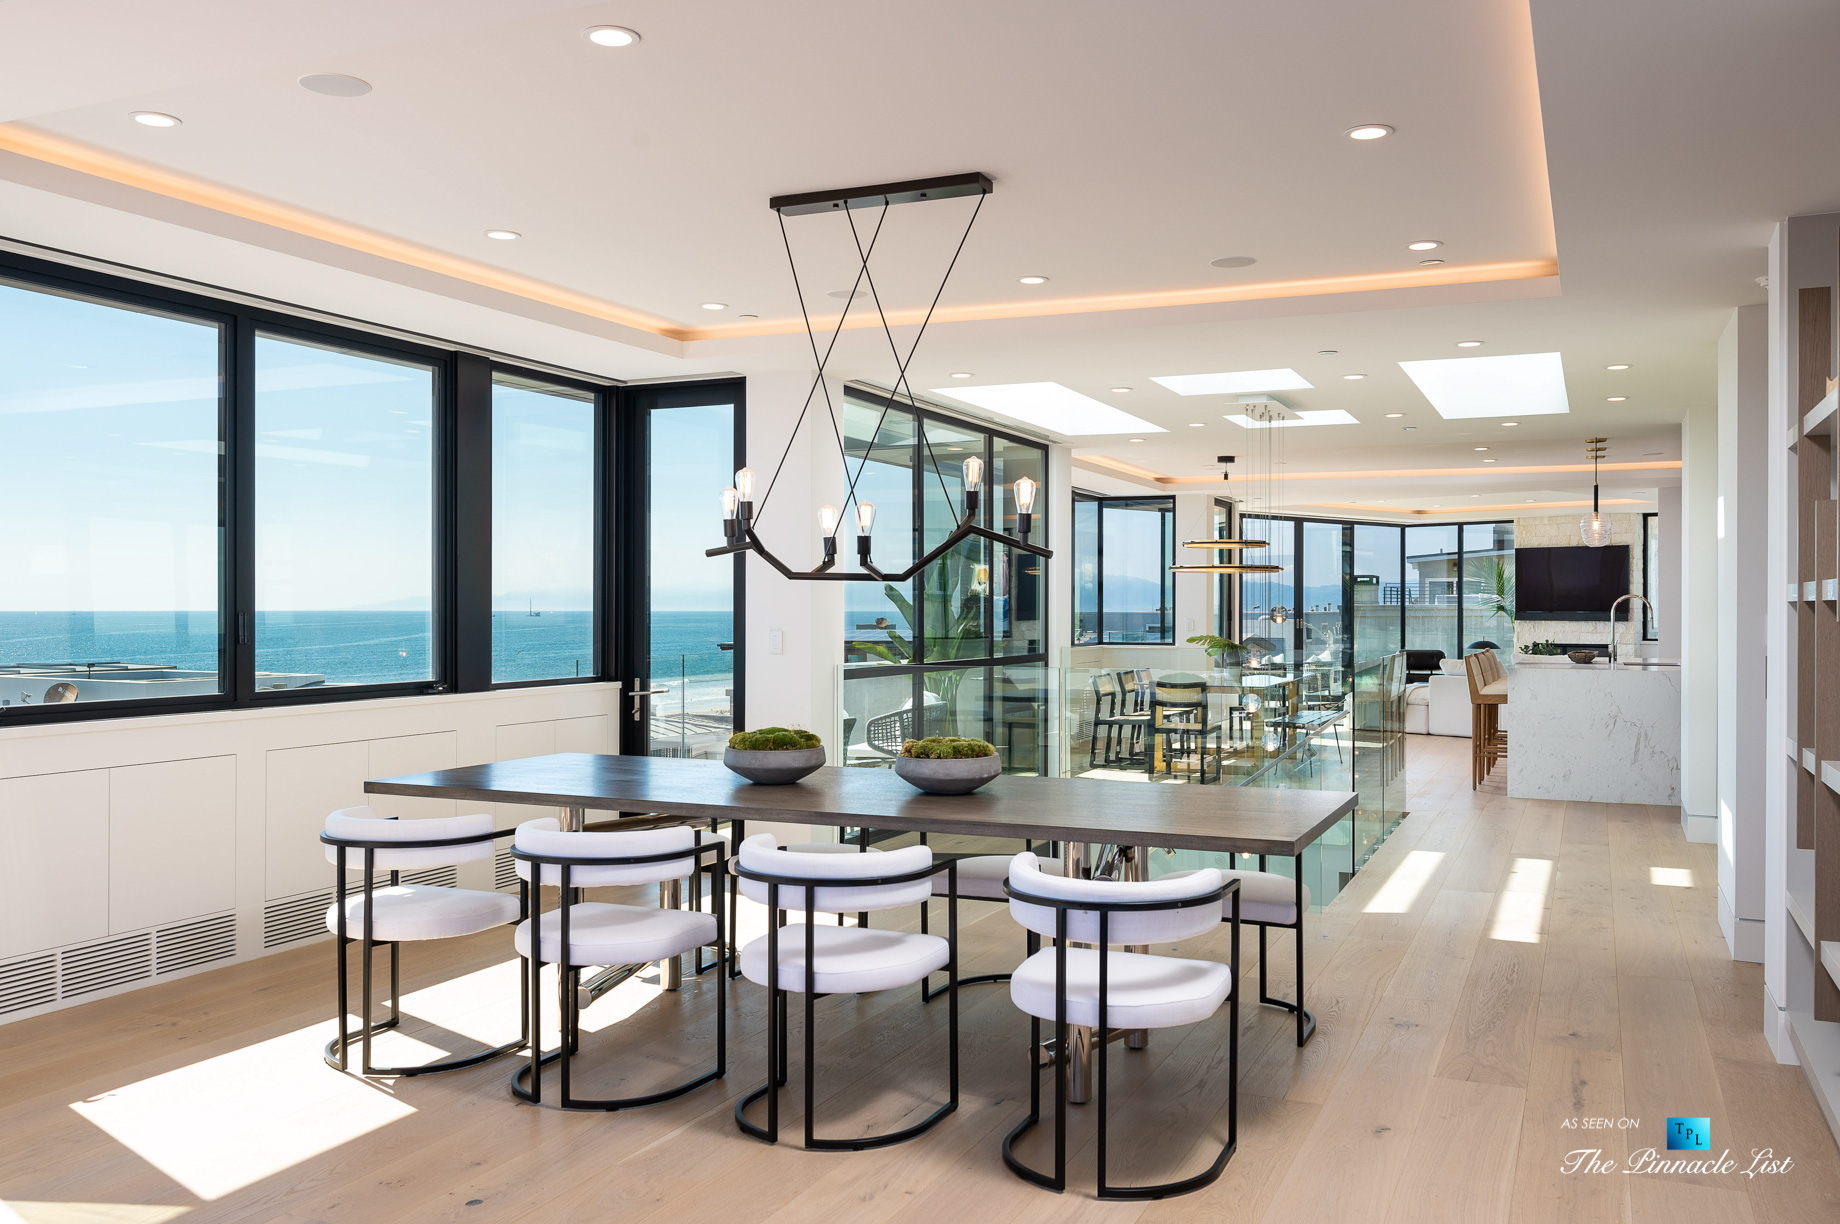 2016 Ocean Dr, Manhattan Beach, CA, USA – Dining Room and Kitchen View – Luxury Real Estate – Modern Ocean View Home